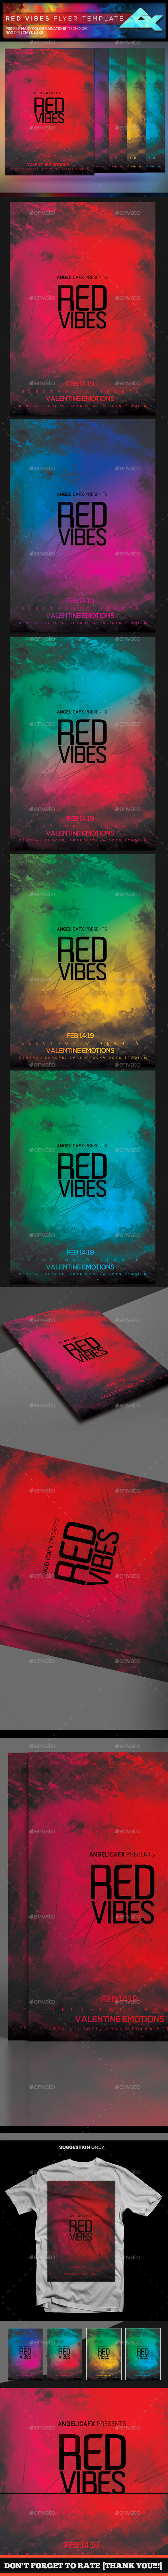 Red Vibes Flyer Template - Flyers Print Templates